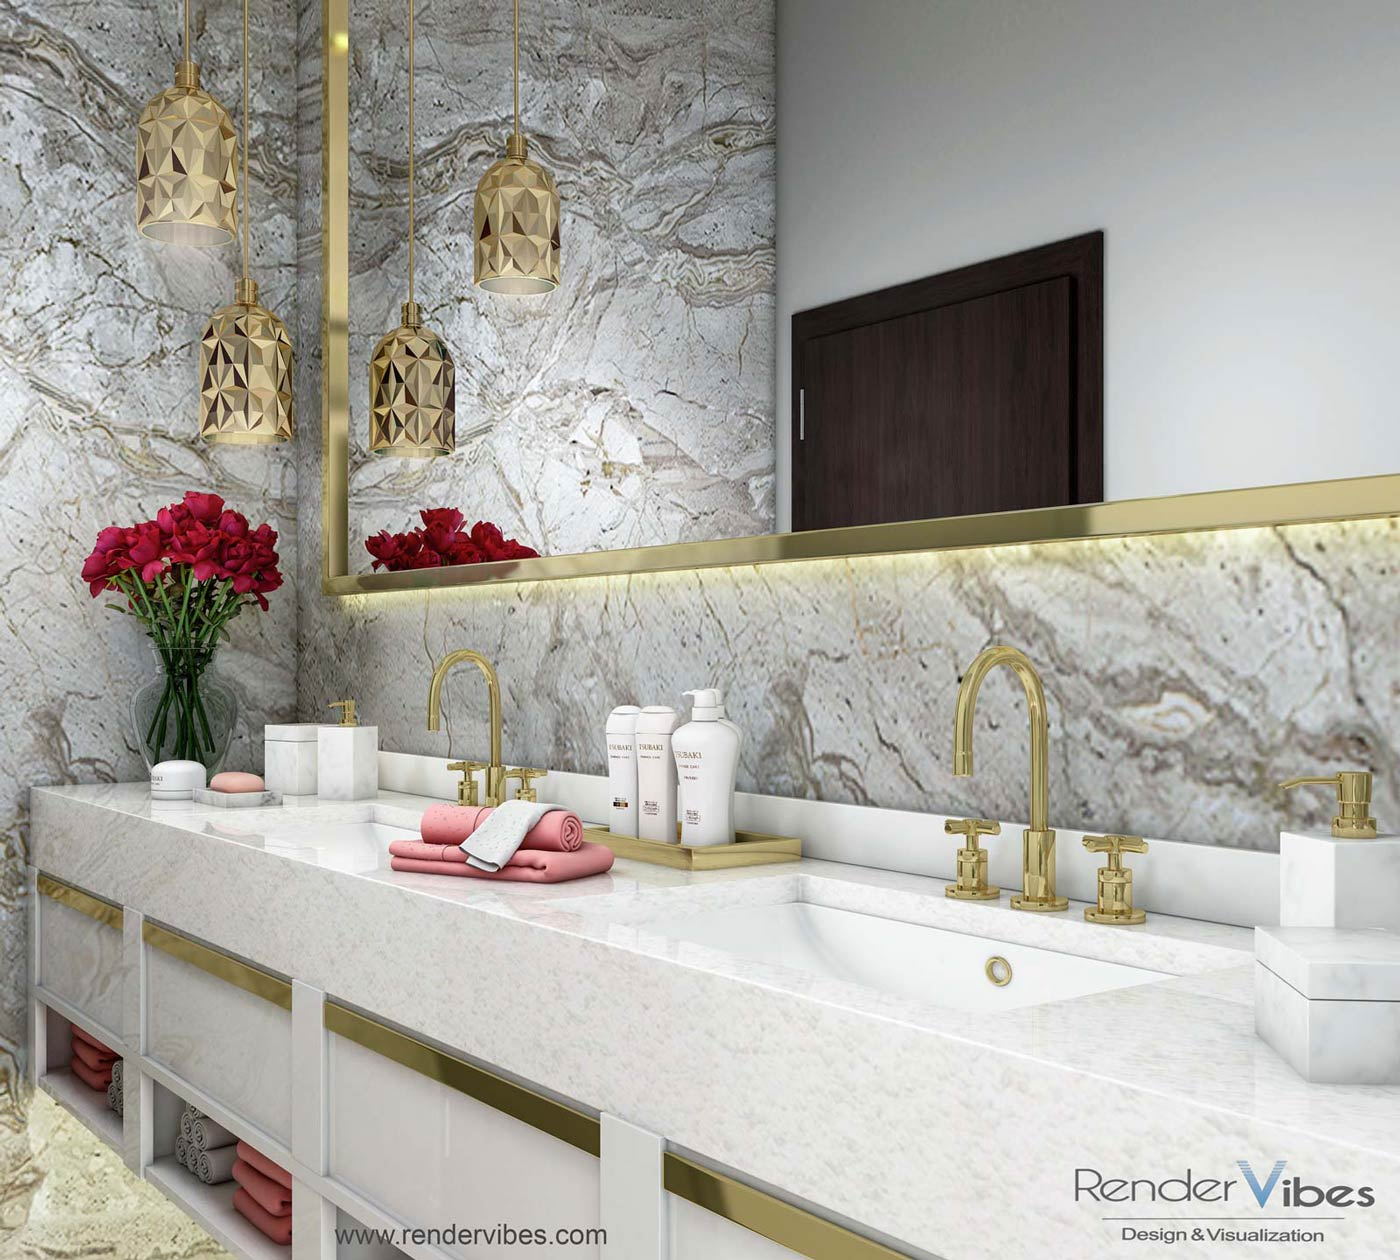 Collection Of Luxury Bathroom Rendering From Various Projects Render Vibes Visualization